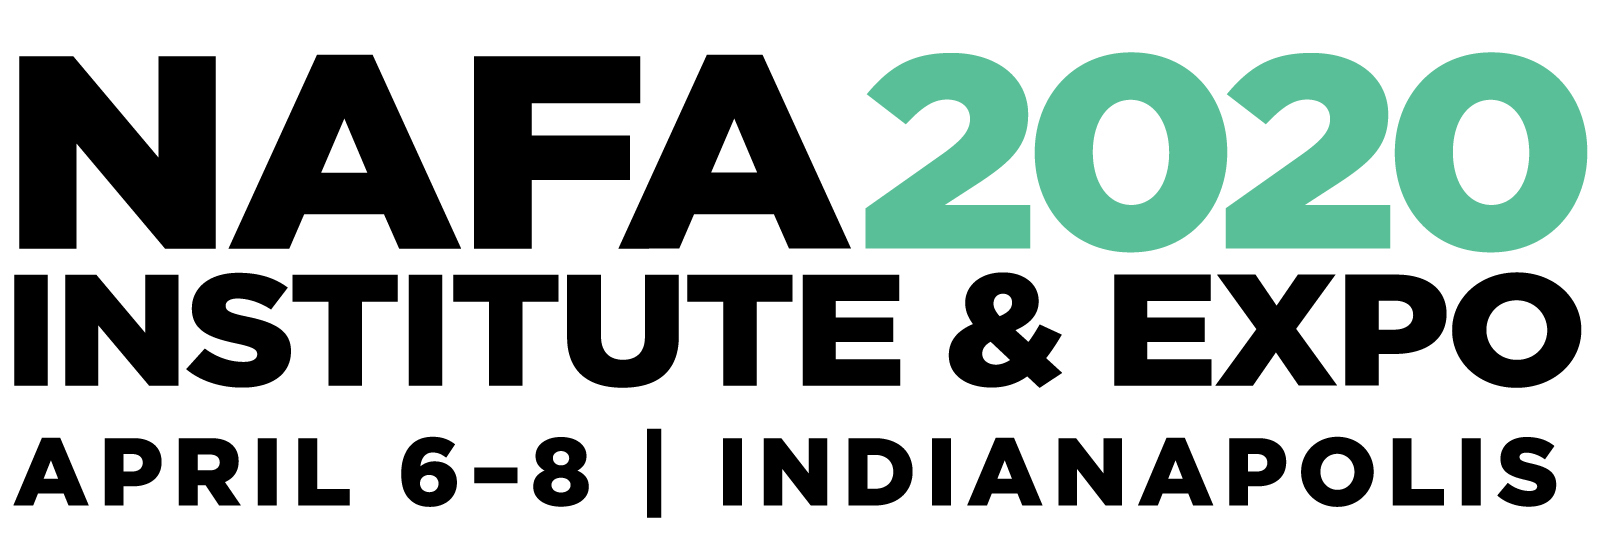 NAFA 2020 Institute & Expo